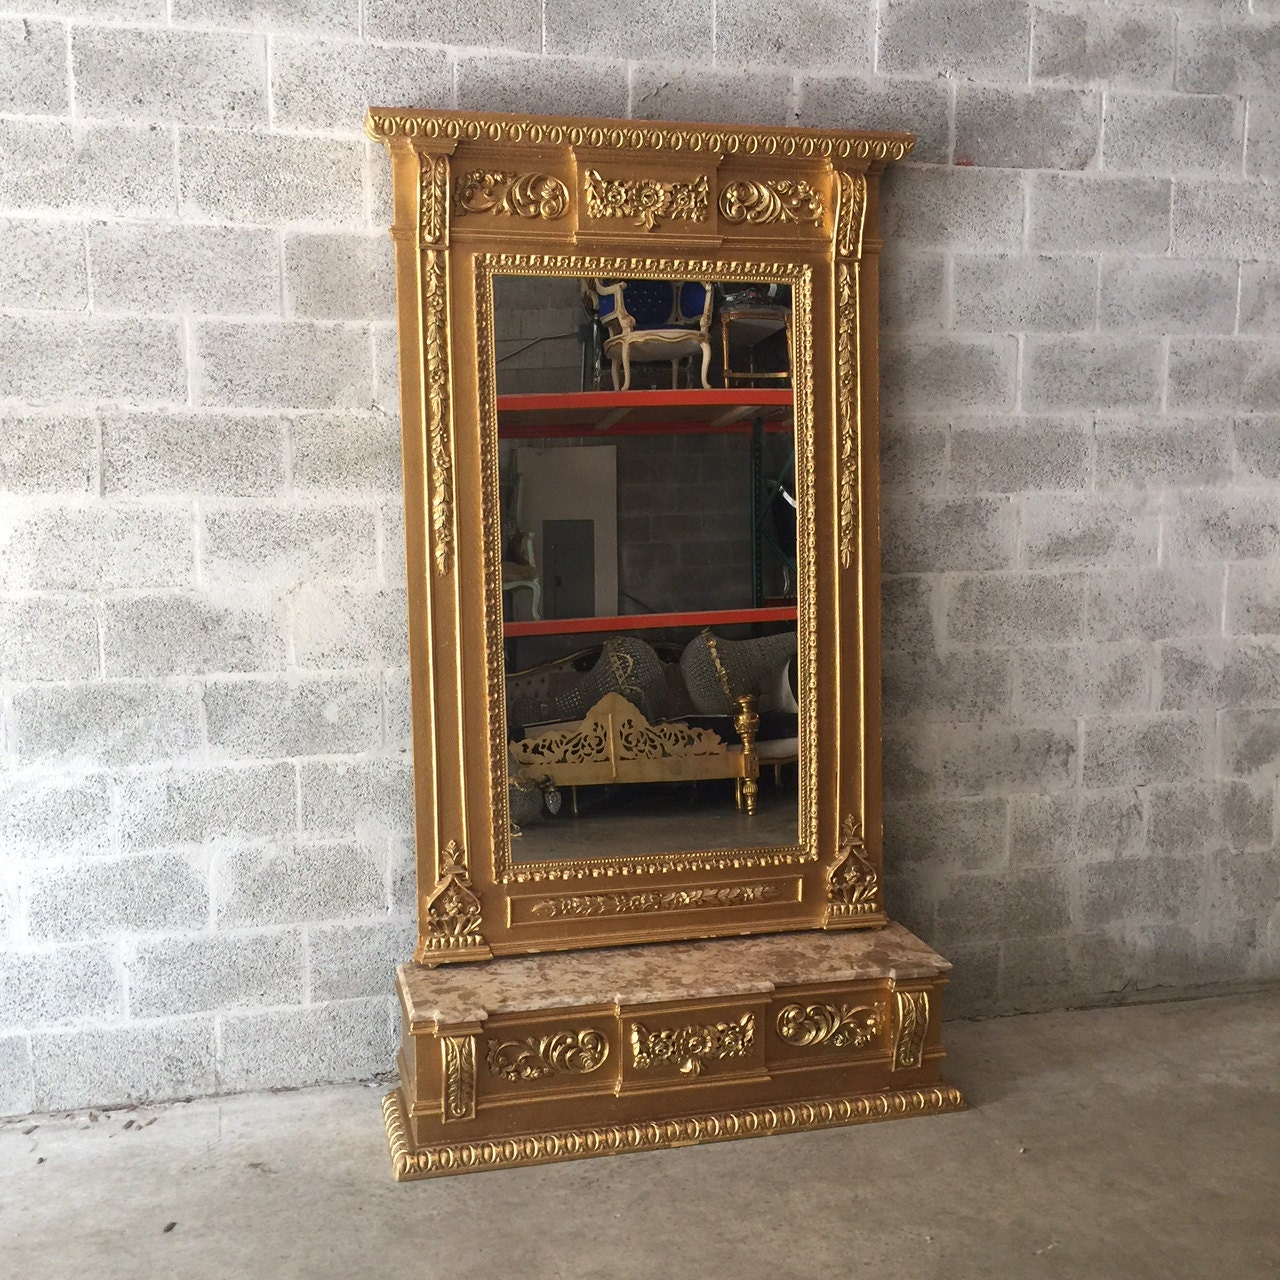 French Floor Mirror Antique French Louis XVI Floor Mirror 7.4 Feet ...